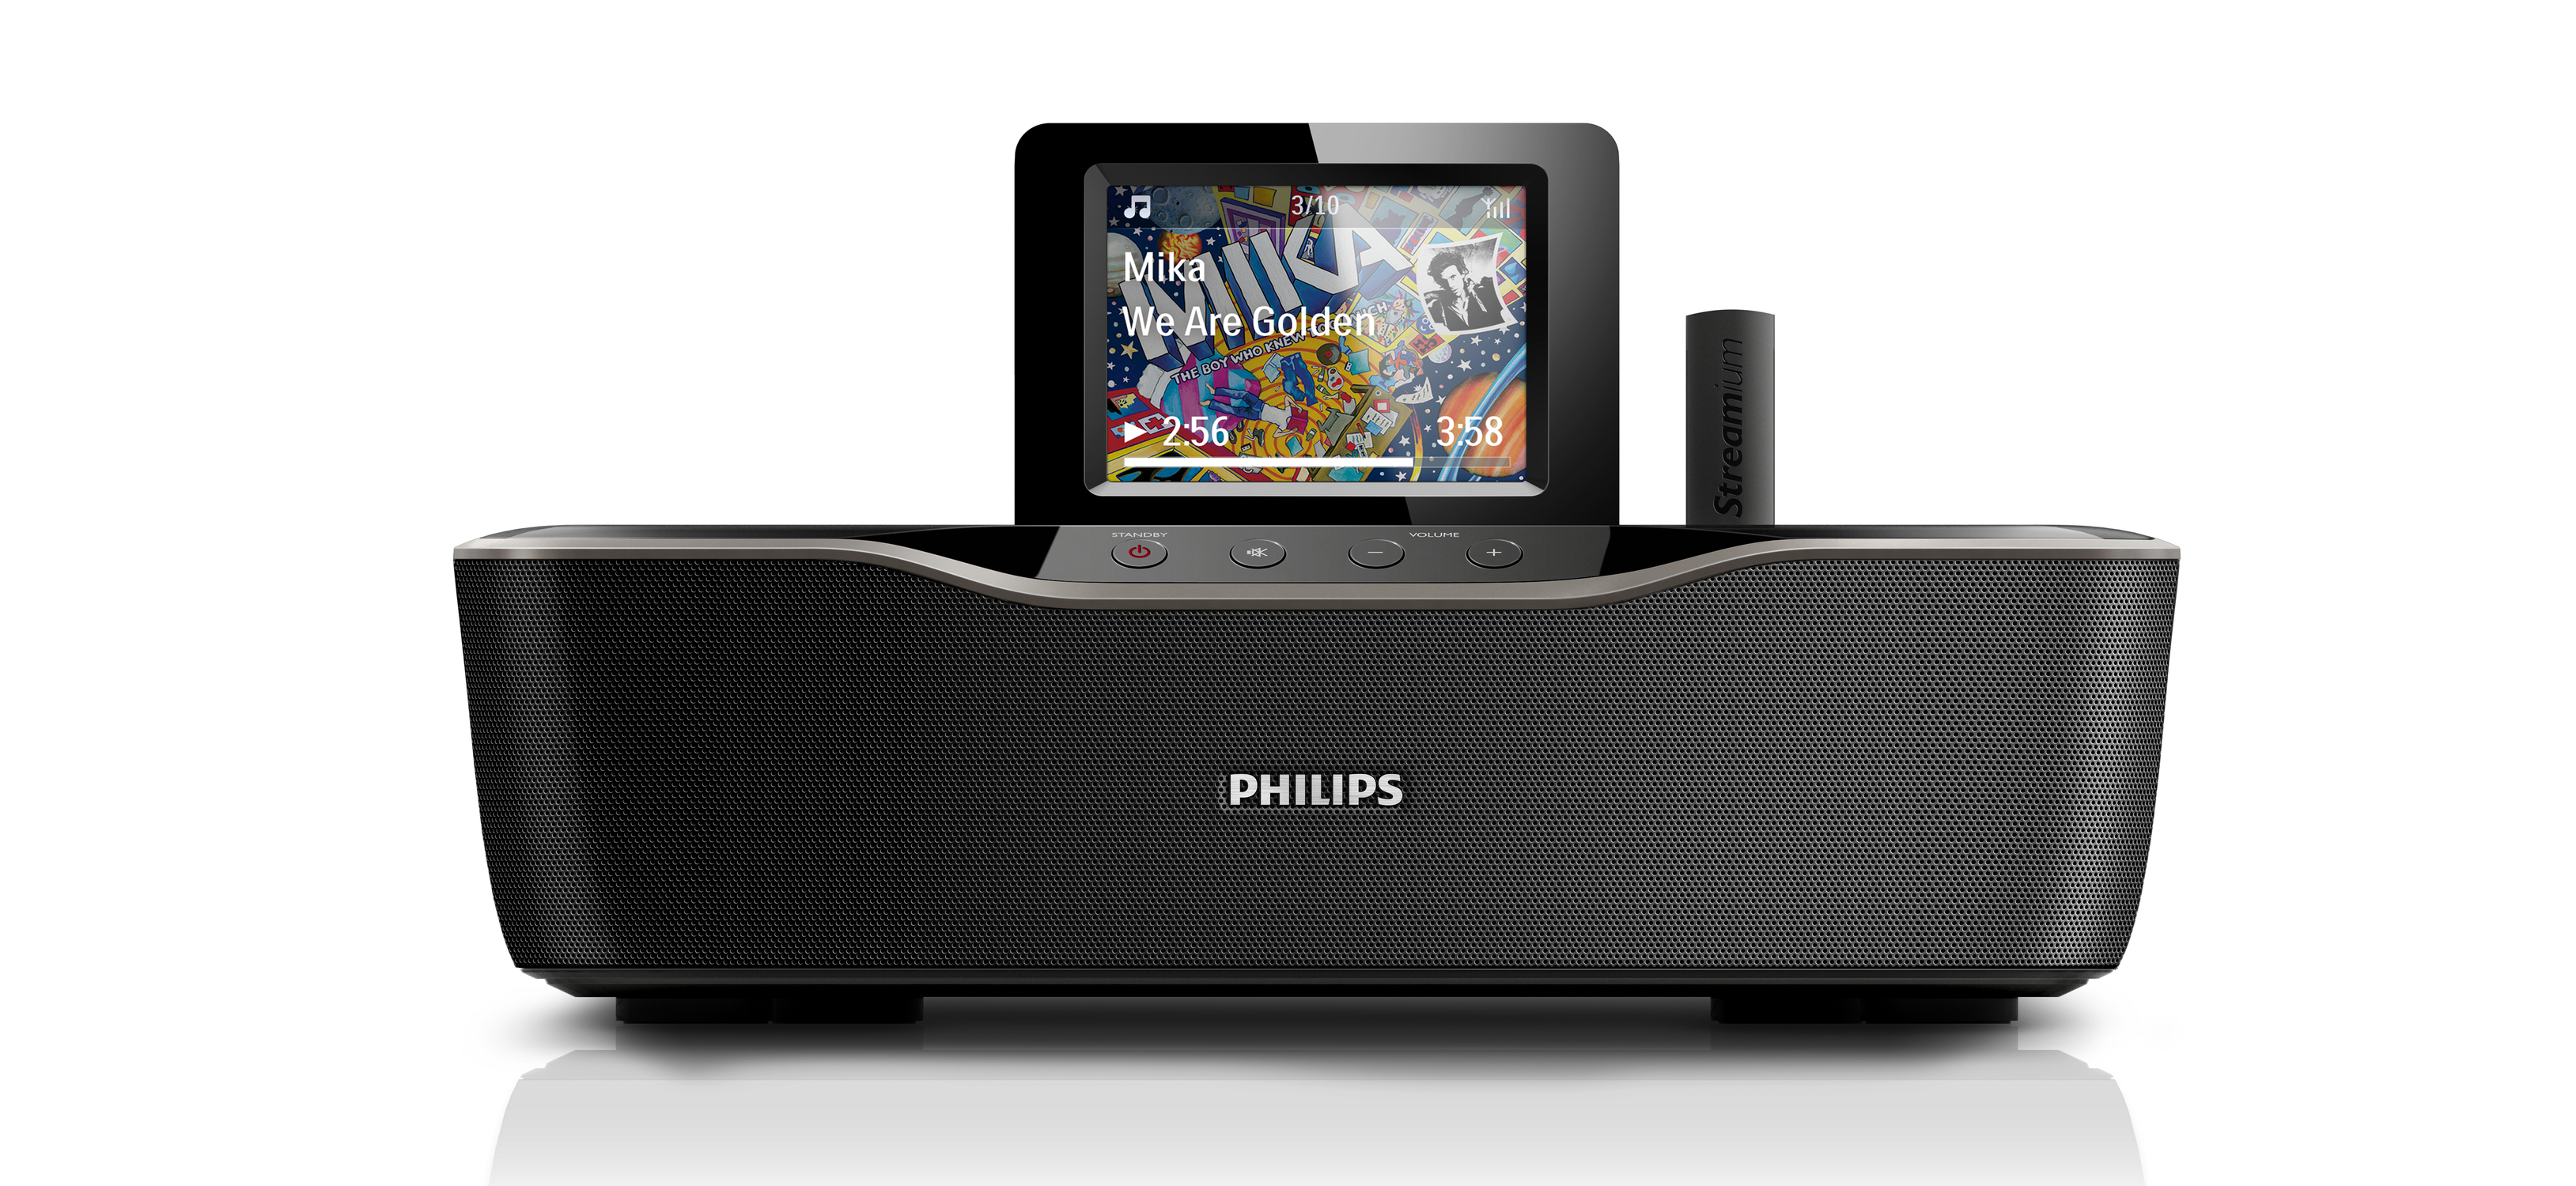 Philips Streamier NP3700